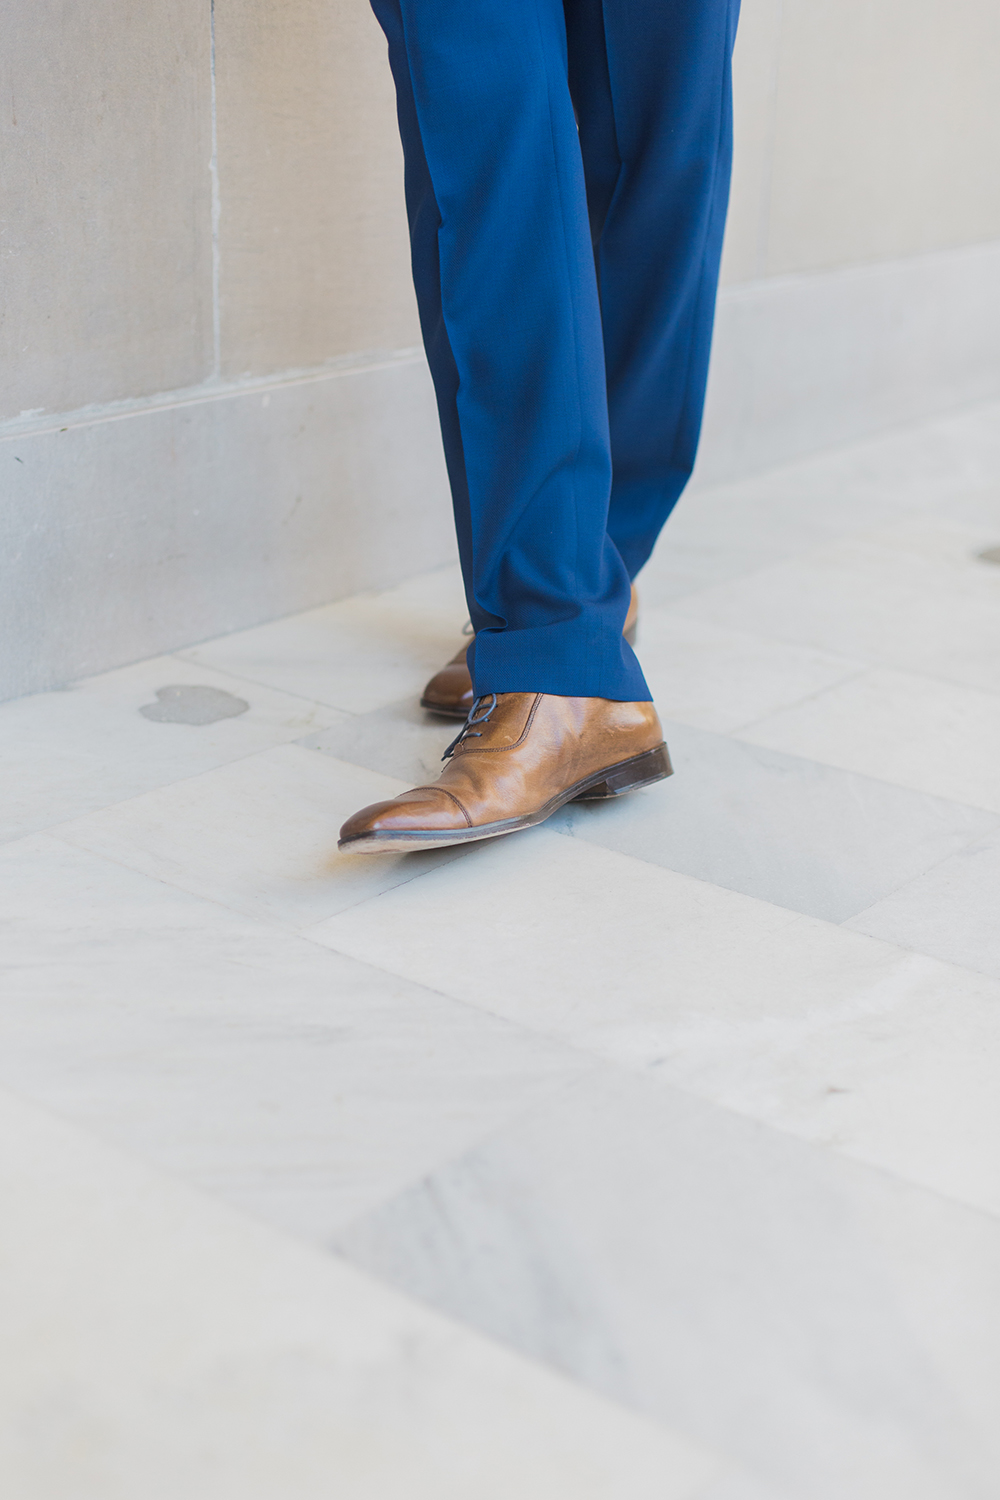 Groom shoes during his wedding in San Francisco City Hall.